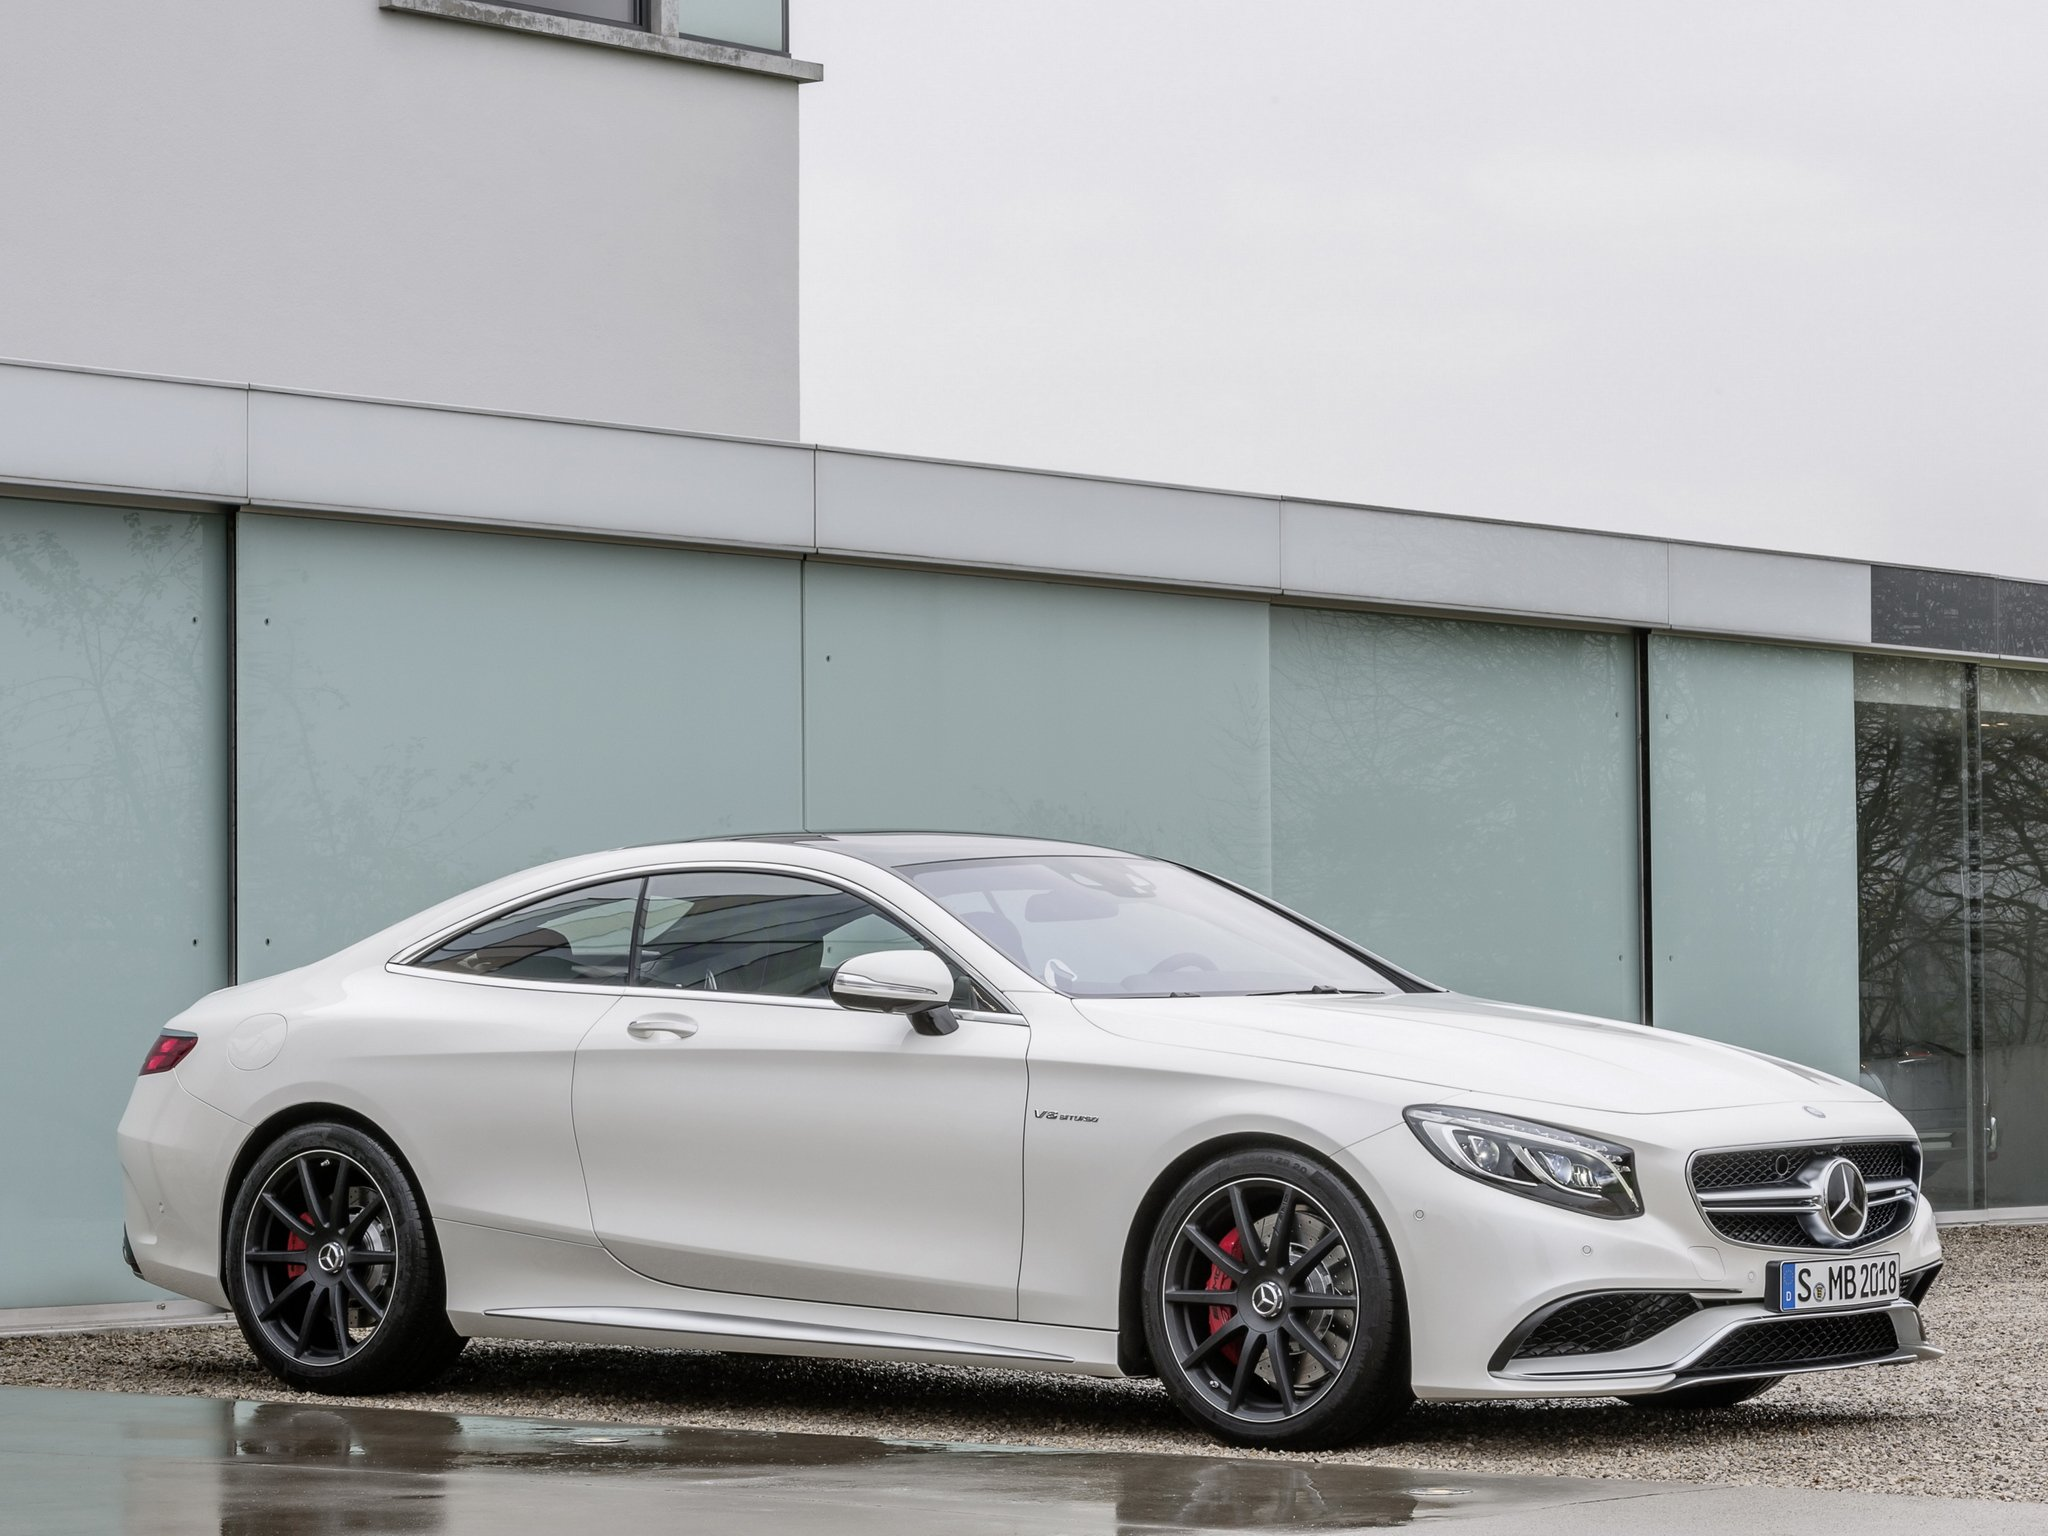 2014 mercedes benz s63 amg coupe c217 e wallpaper for Mercedes benz s63 amg 2014